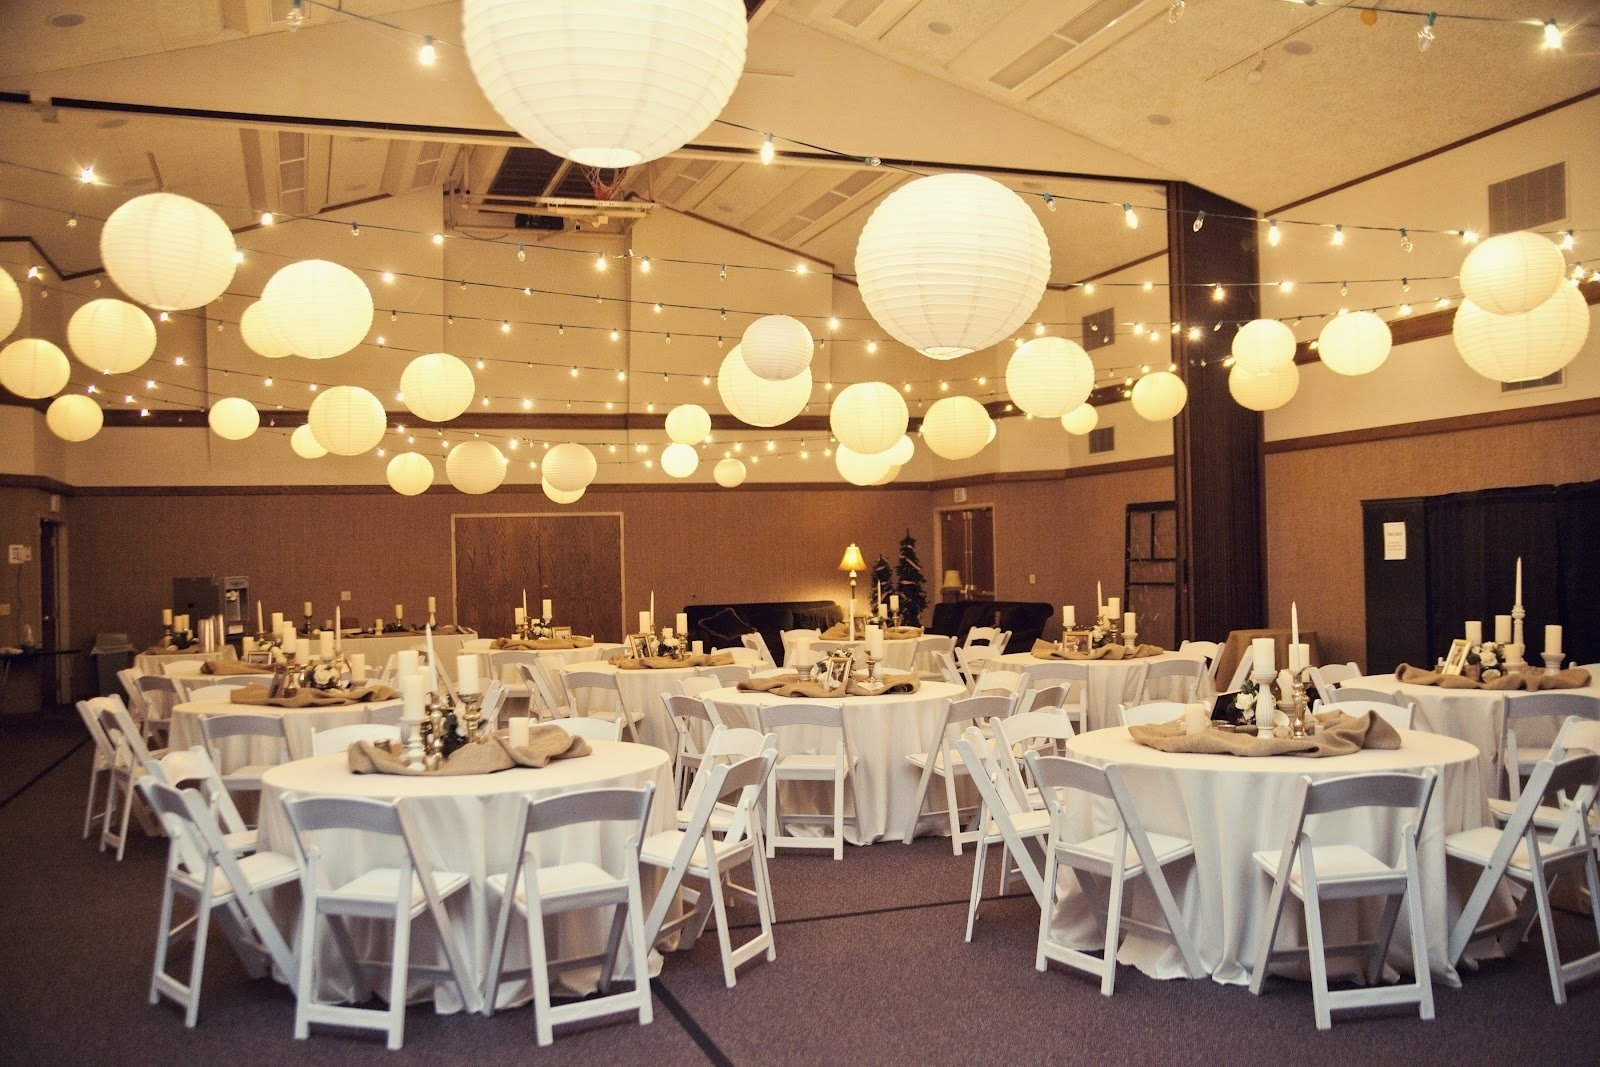 10 Lovable Reception Ideas For Small Wedding small wedding reception ideas sydney nice and small wedding 2020